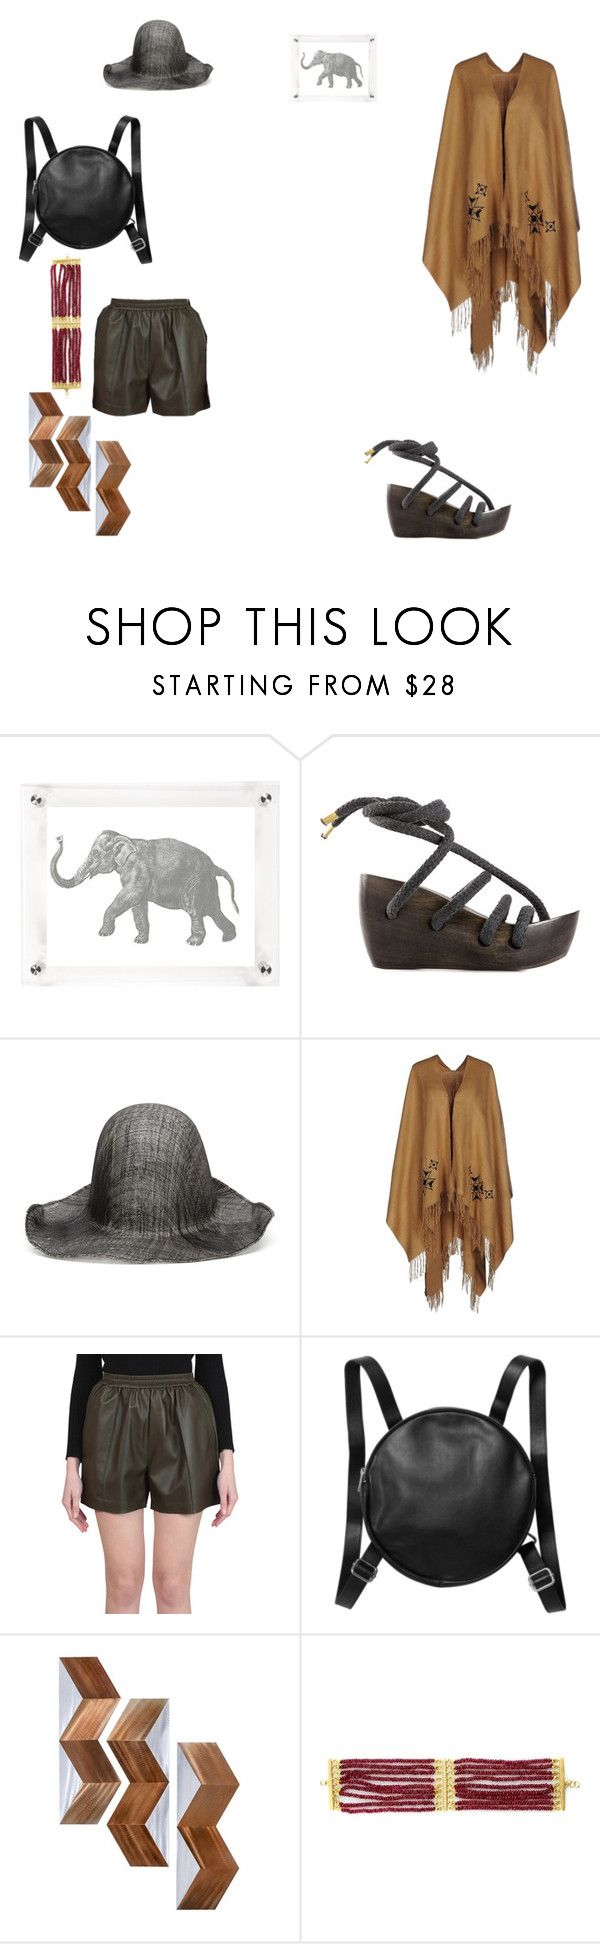 """""""1"""" by johnfontinelly on Polyvore featuring REINHARD PLANK, Givenchy, Monki, Nova Lighting, women's clothing, women, female, woman, misses and juniors"""